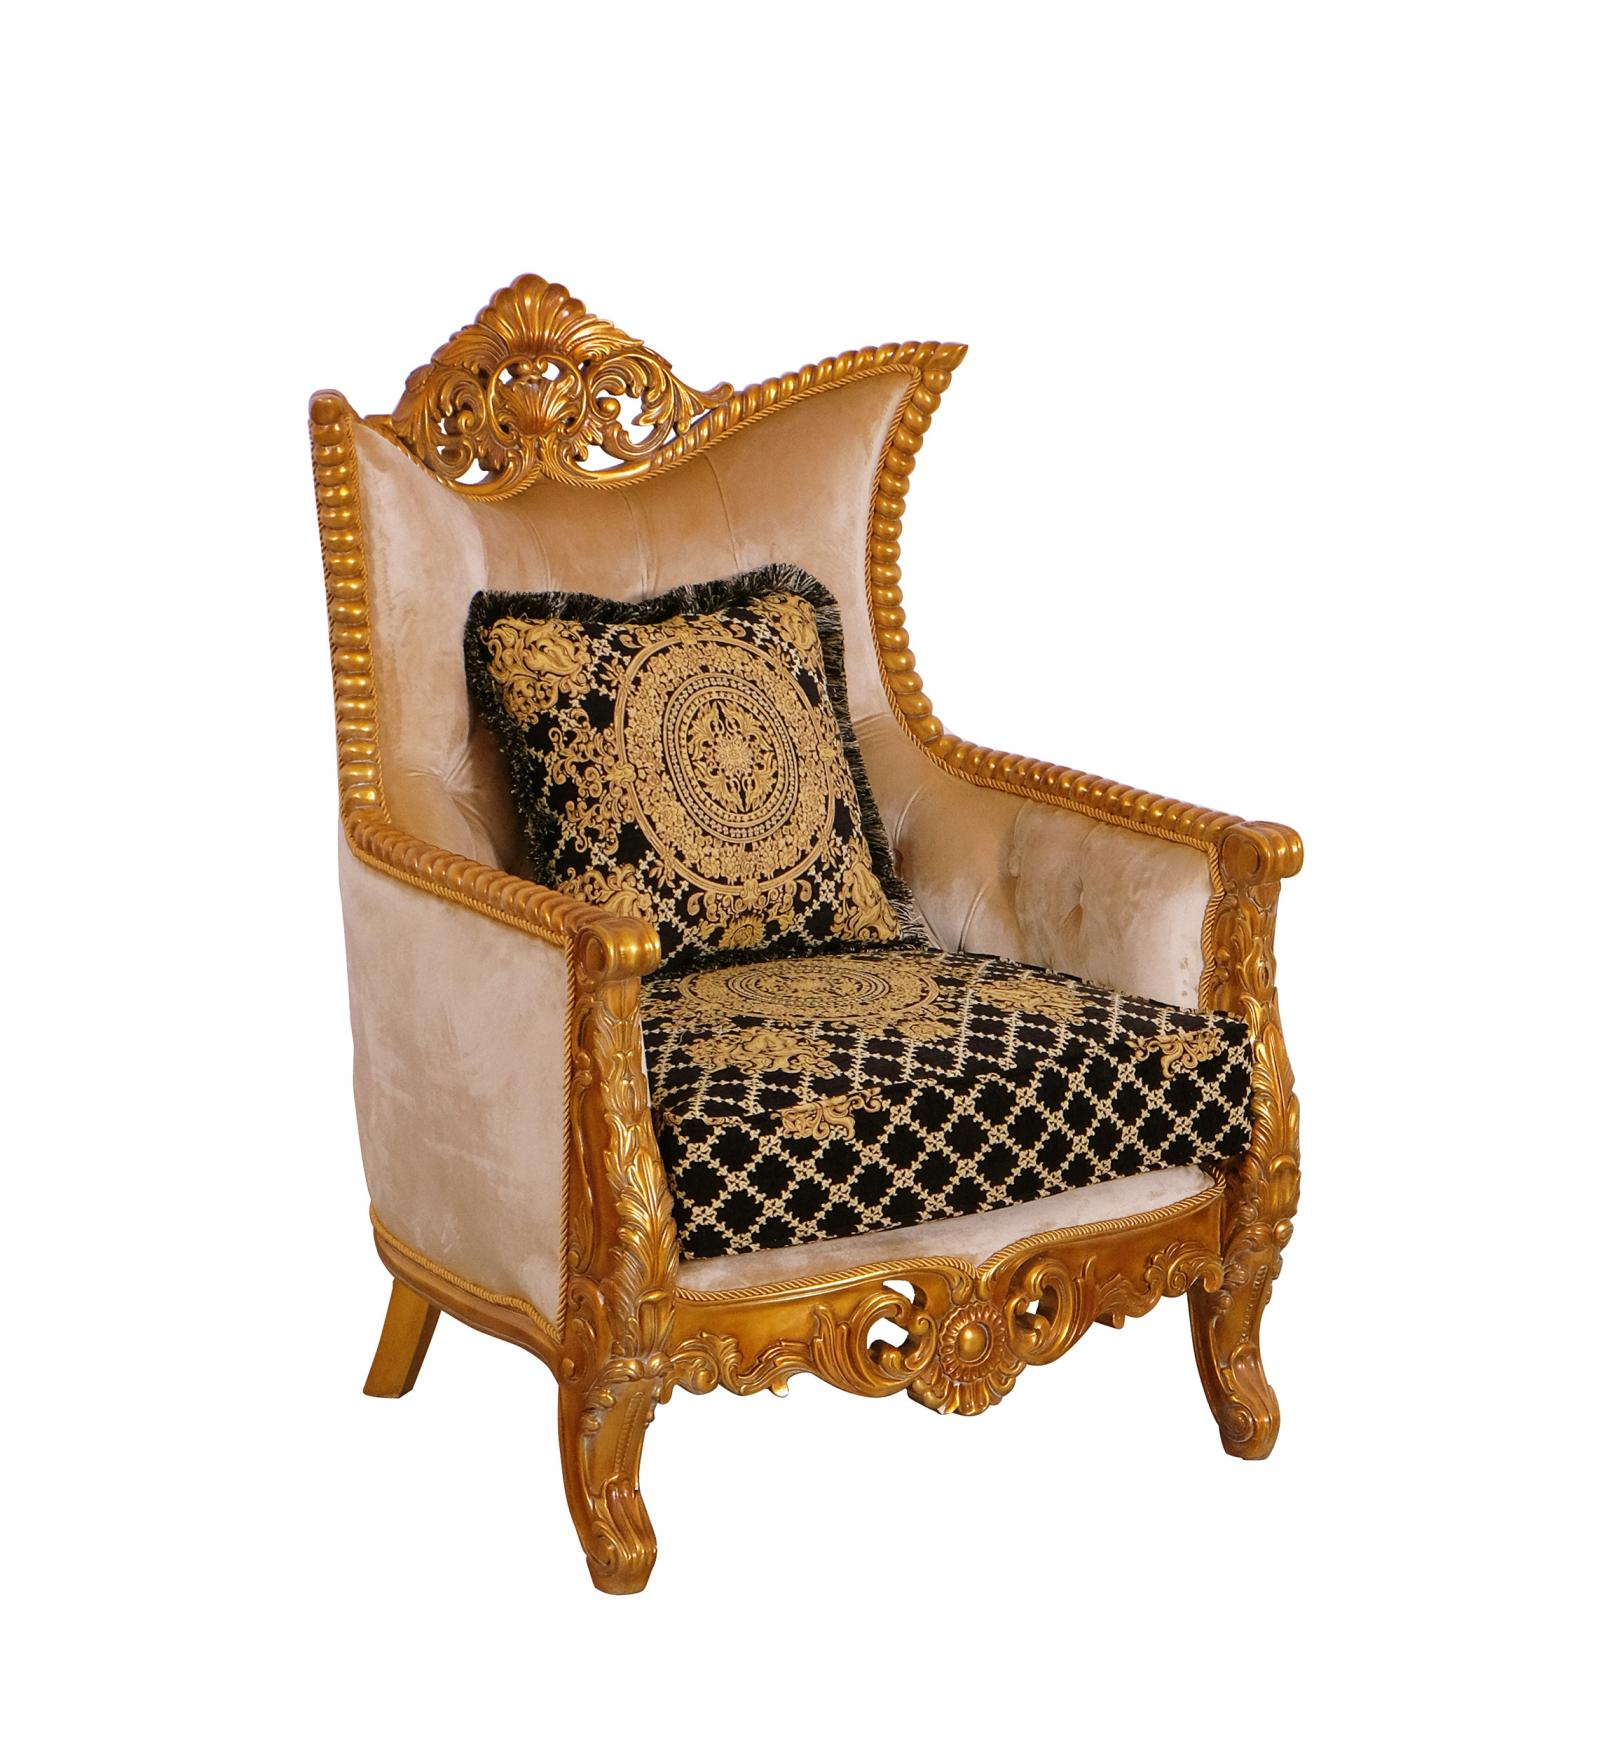 Classic  Traditional Black  Gold Wood  Solid Hardwood and Fabric Arm Chair EUROPEAN FURNITURE 31052-C